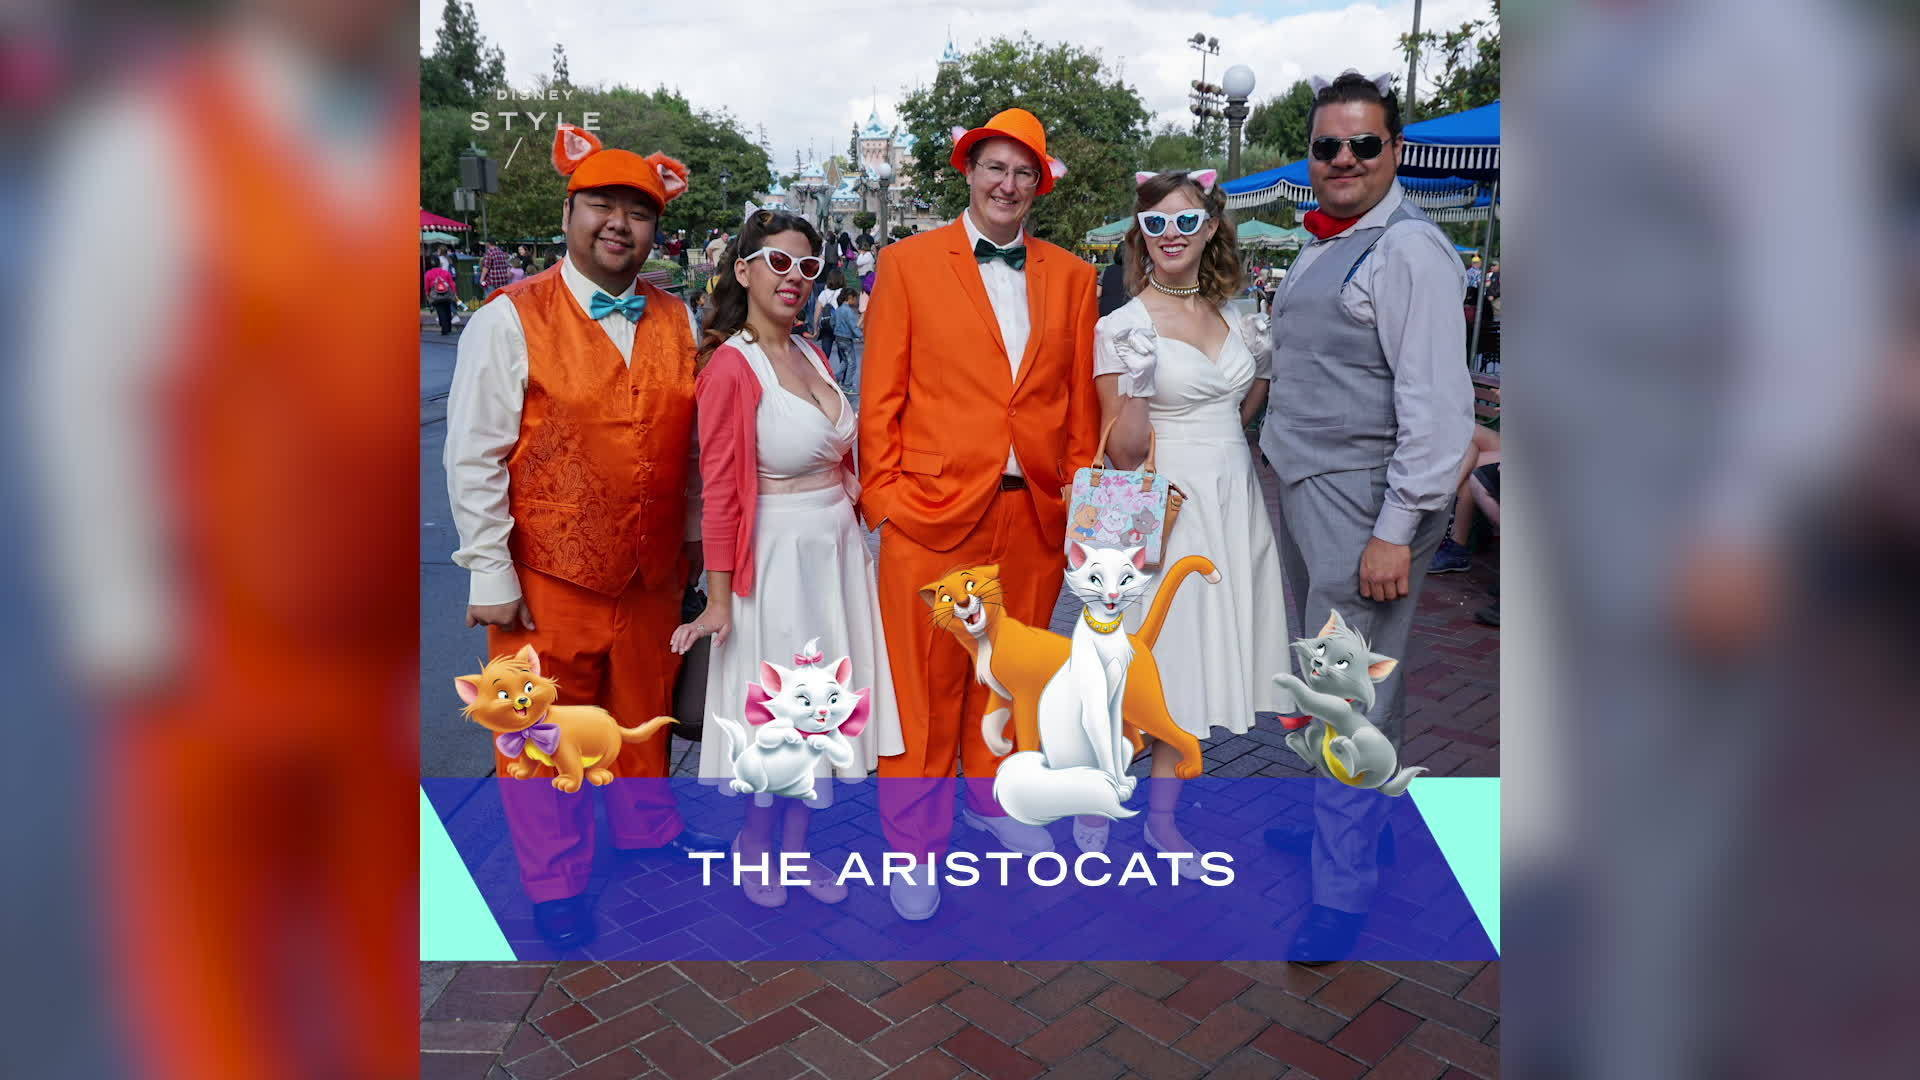 Our Top 50 Looks From Fall Dapper Day at the Disneyland Resort